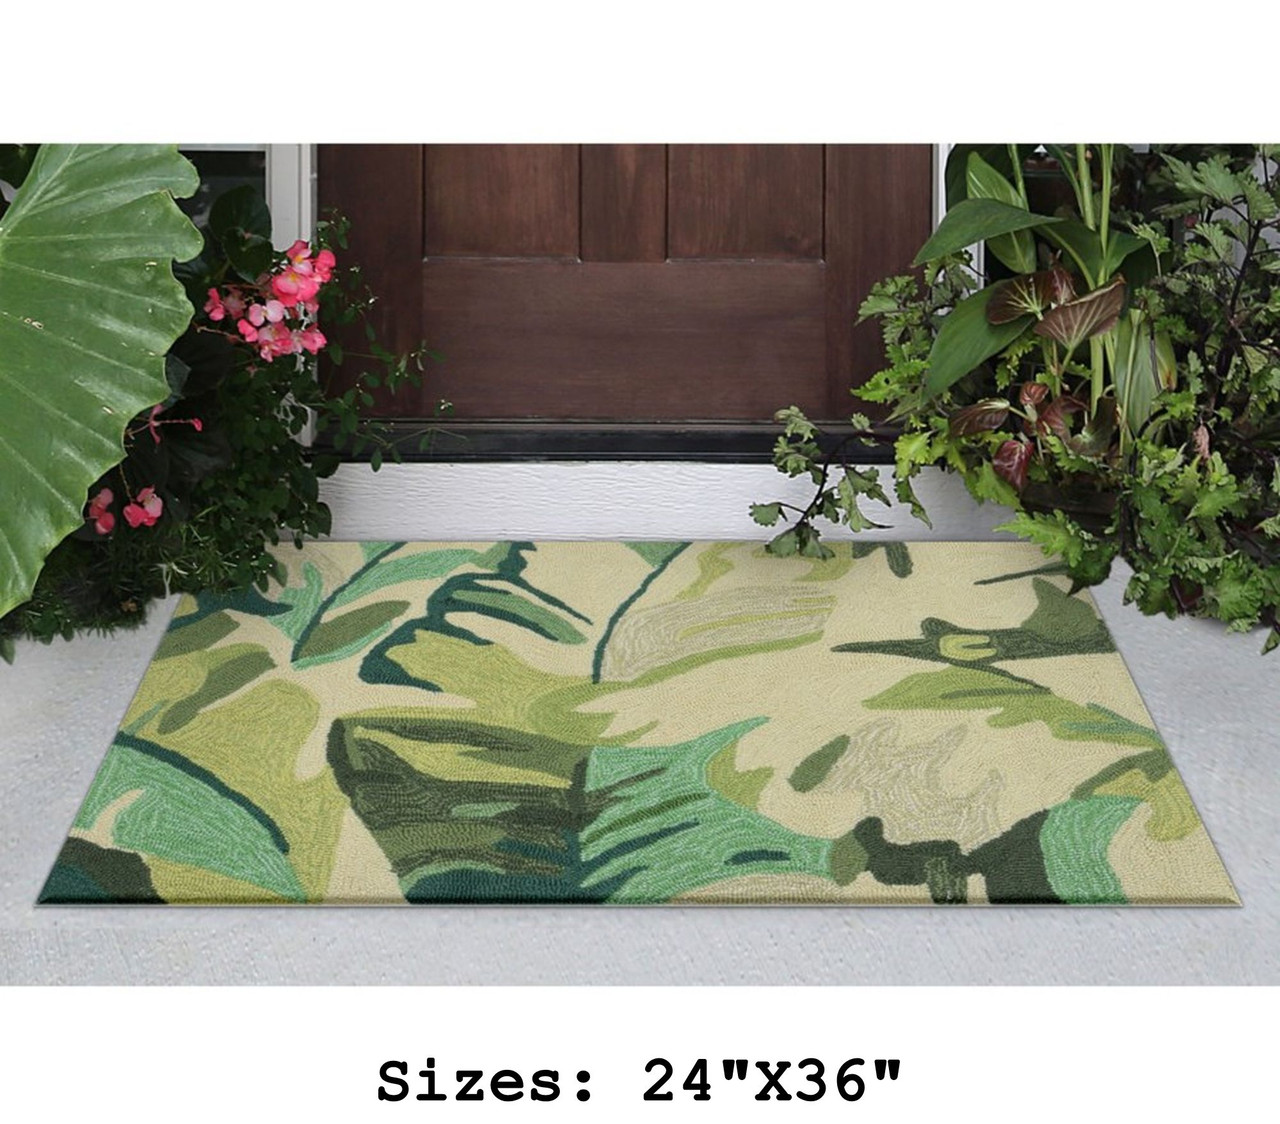 Green Capri Palm Leaf Indoor/Outdoor Rug - Small Rectangle Lifestyle